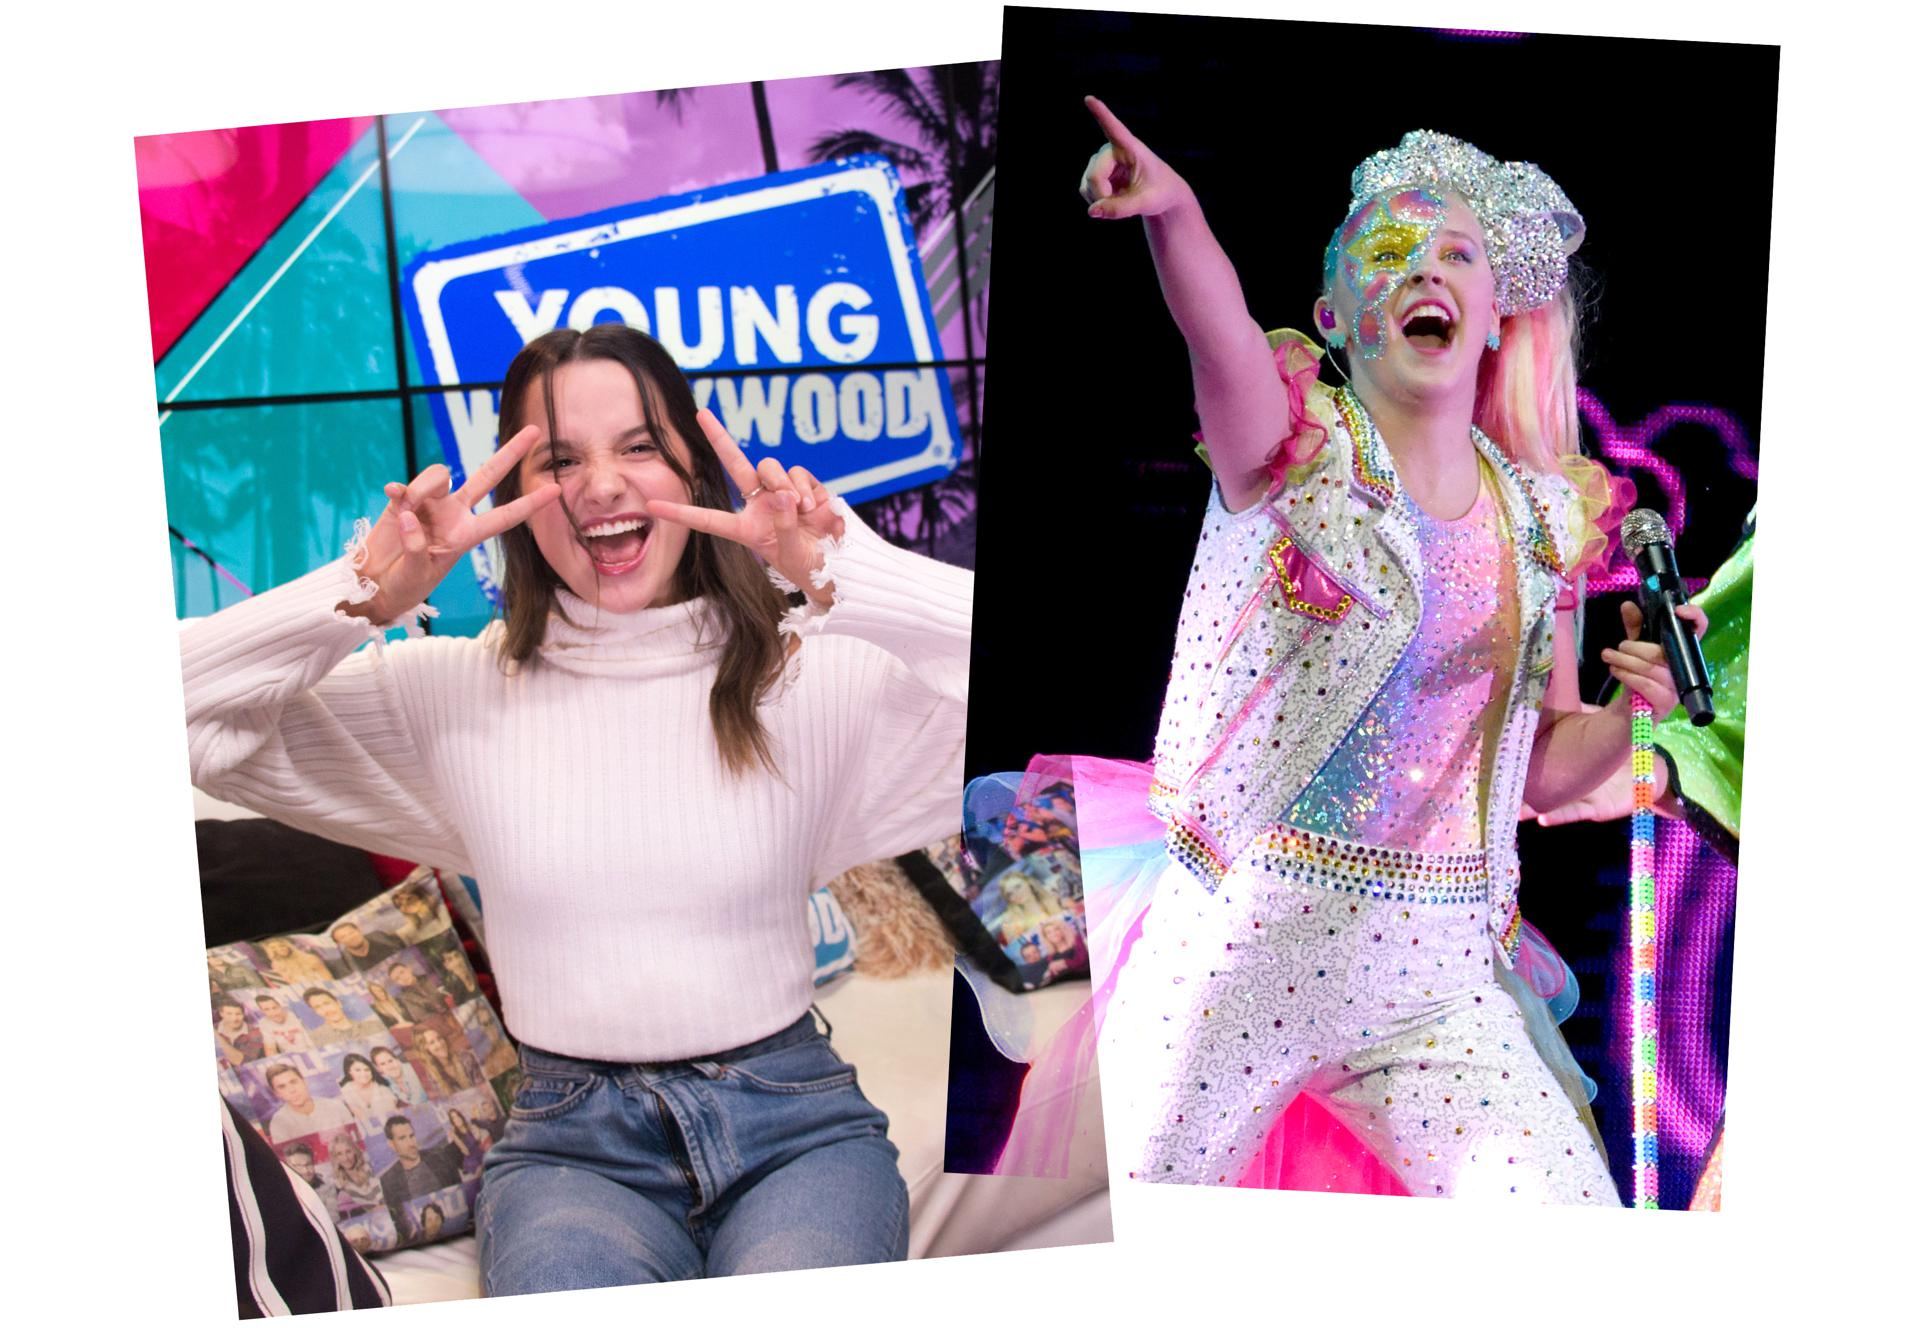 Nickelodeon Annie LeBlanc, YouTube series Chicken Girls, and Dance Moms' JoJo Siwa,